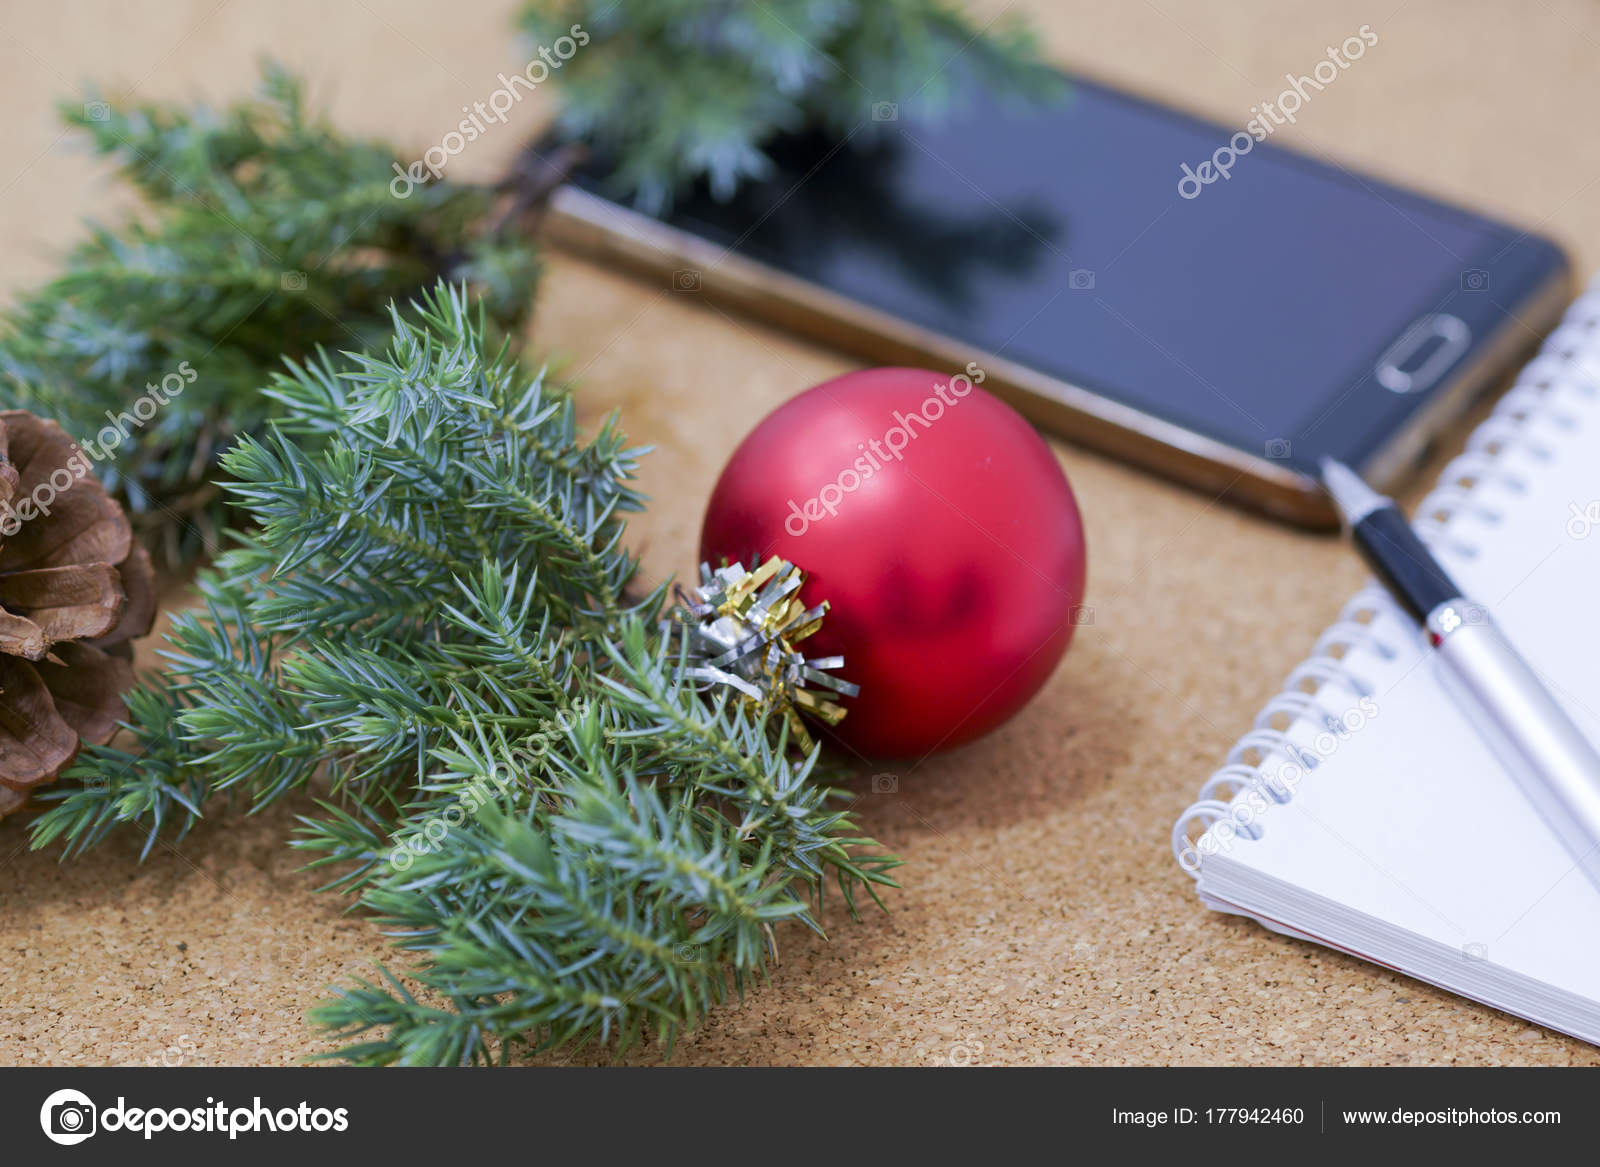 not completed list of goals in a notebook on a wooden table with christmas decorations and - Christmas Decorations List